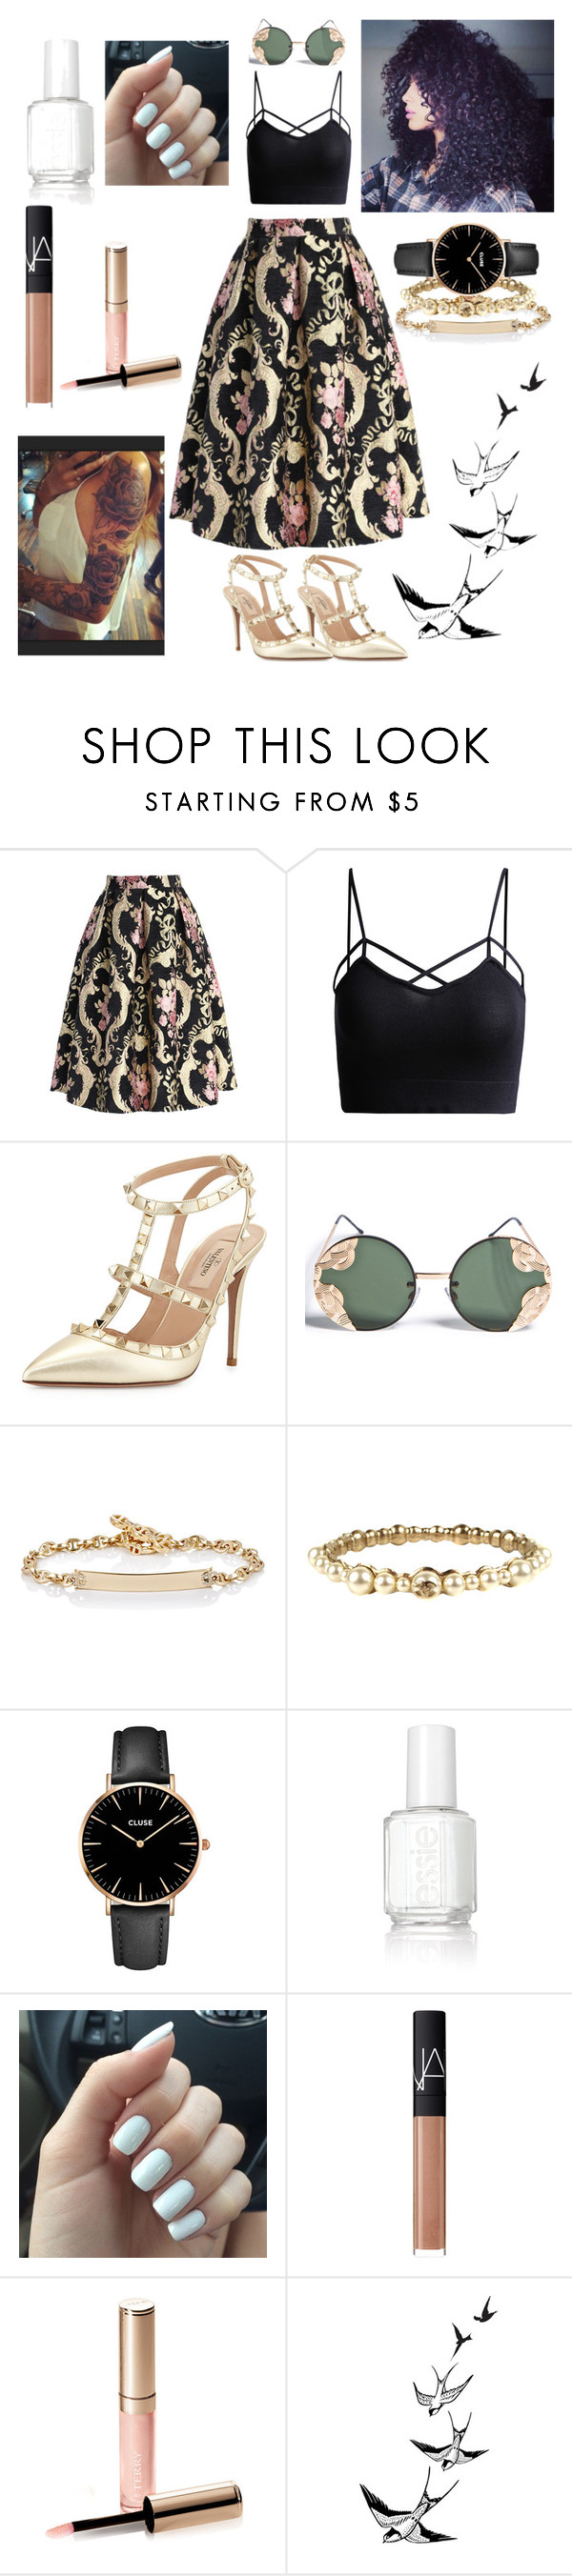 """Good Morning:)"" by emeraldw ❤ liked on Polyvore featuring Chicwish, Valentino, Spitfire, Hoorsenbuhs, Chanel, CLUSE, Essie, NARS Cosmetics and By Terry"